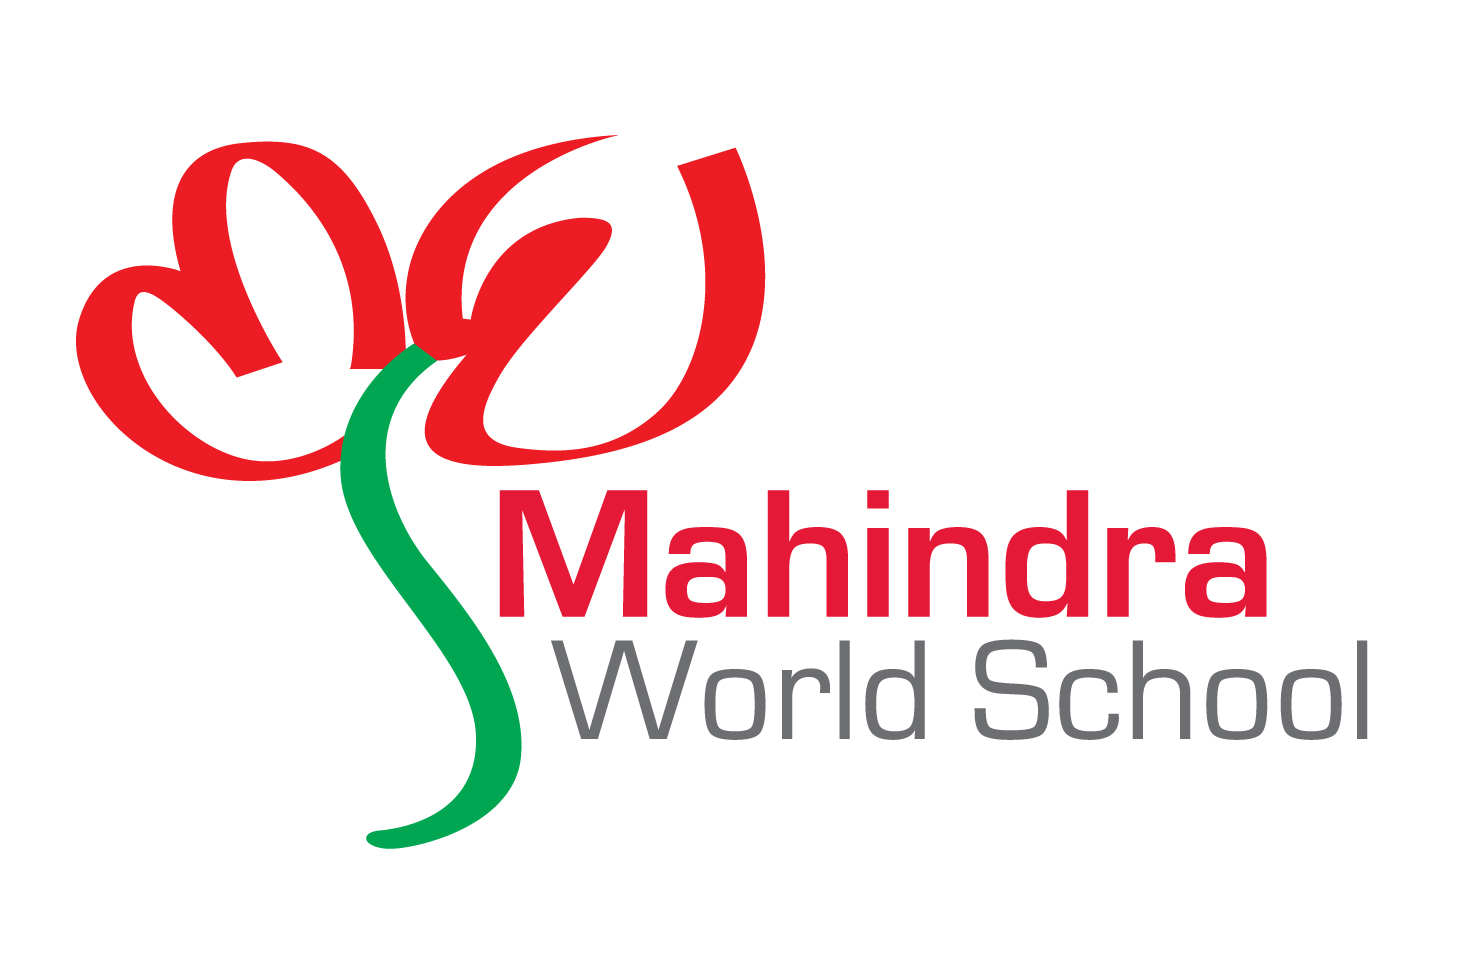 Mahindra World School